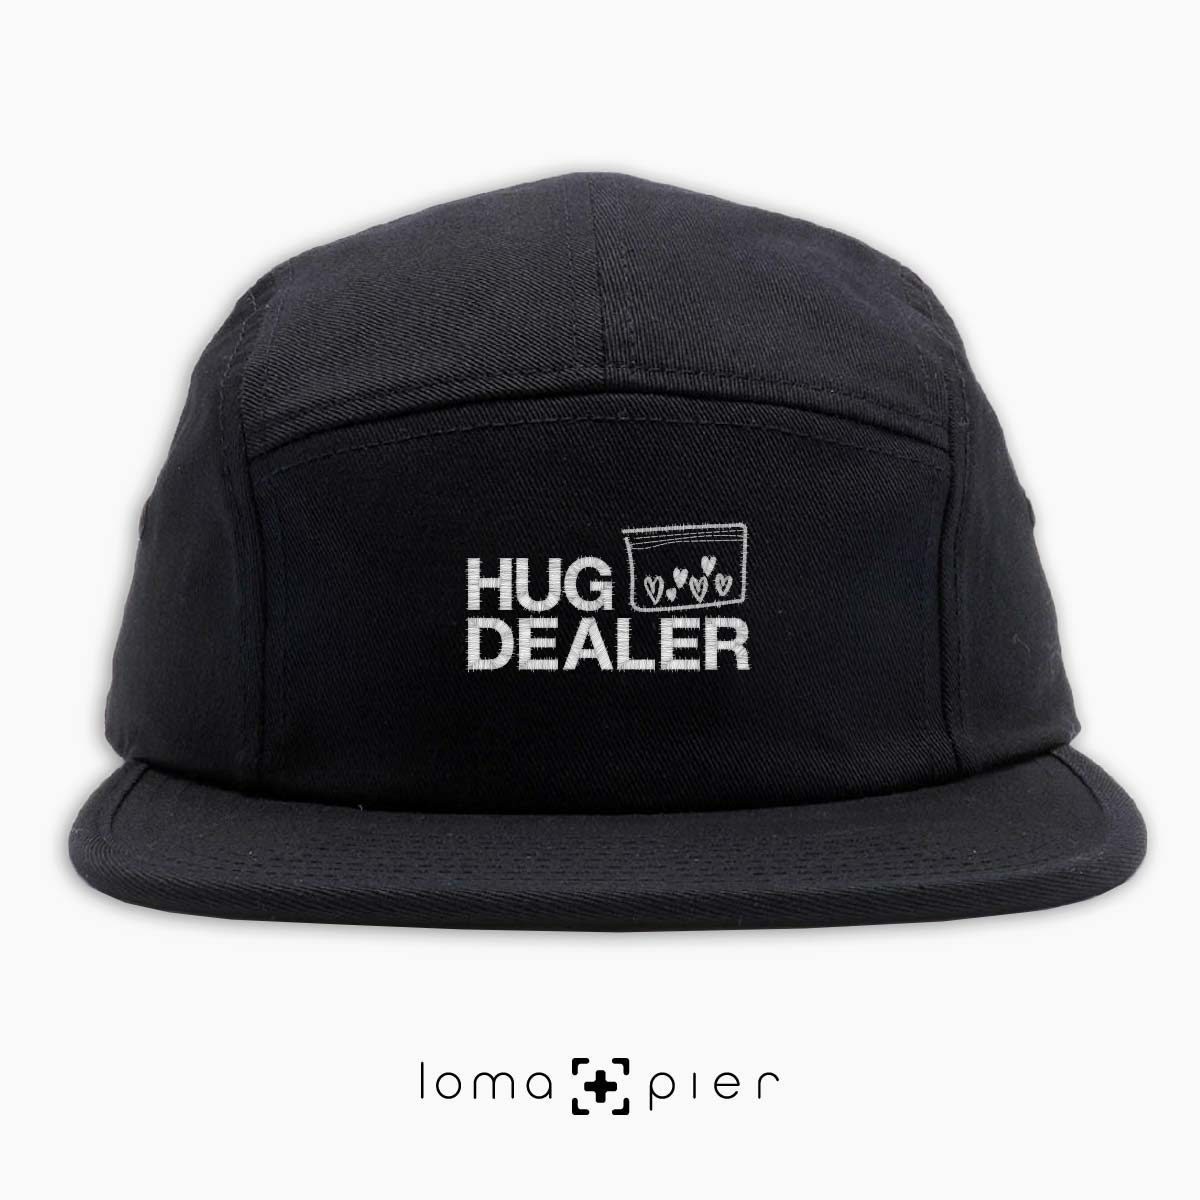 HUG DEALER icon embroidered on a black cotton 5-panel hat with white thread by loma+pier hat store